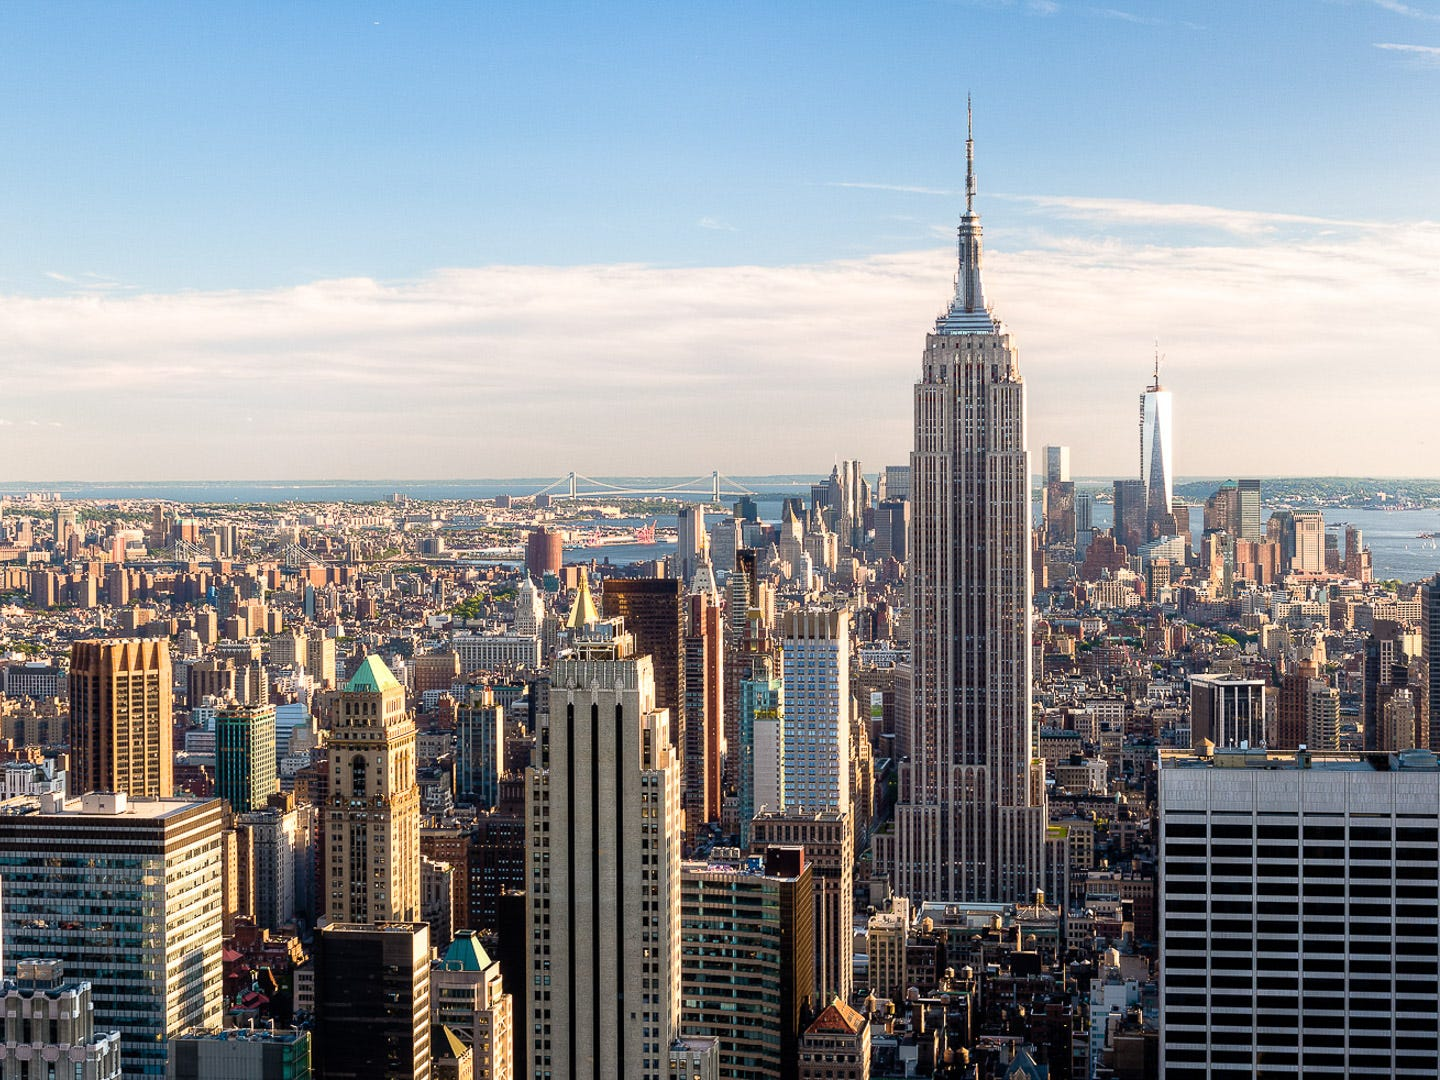 No. 13: New York City. Thanksgiving trip cost: $1,190. Christmas trip cost: $1,332.50. At any time of the year, New York is one of the worst vacation cities for your wallet. Fortunately, there are plenty of festive, free things to do once you get there, including checking out the holiday window displays and visiting the tree at Rockefeller Center.